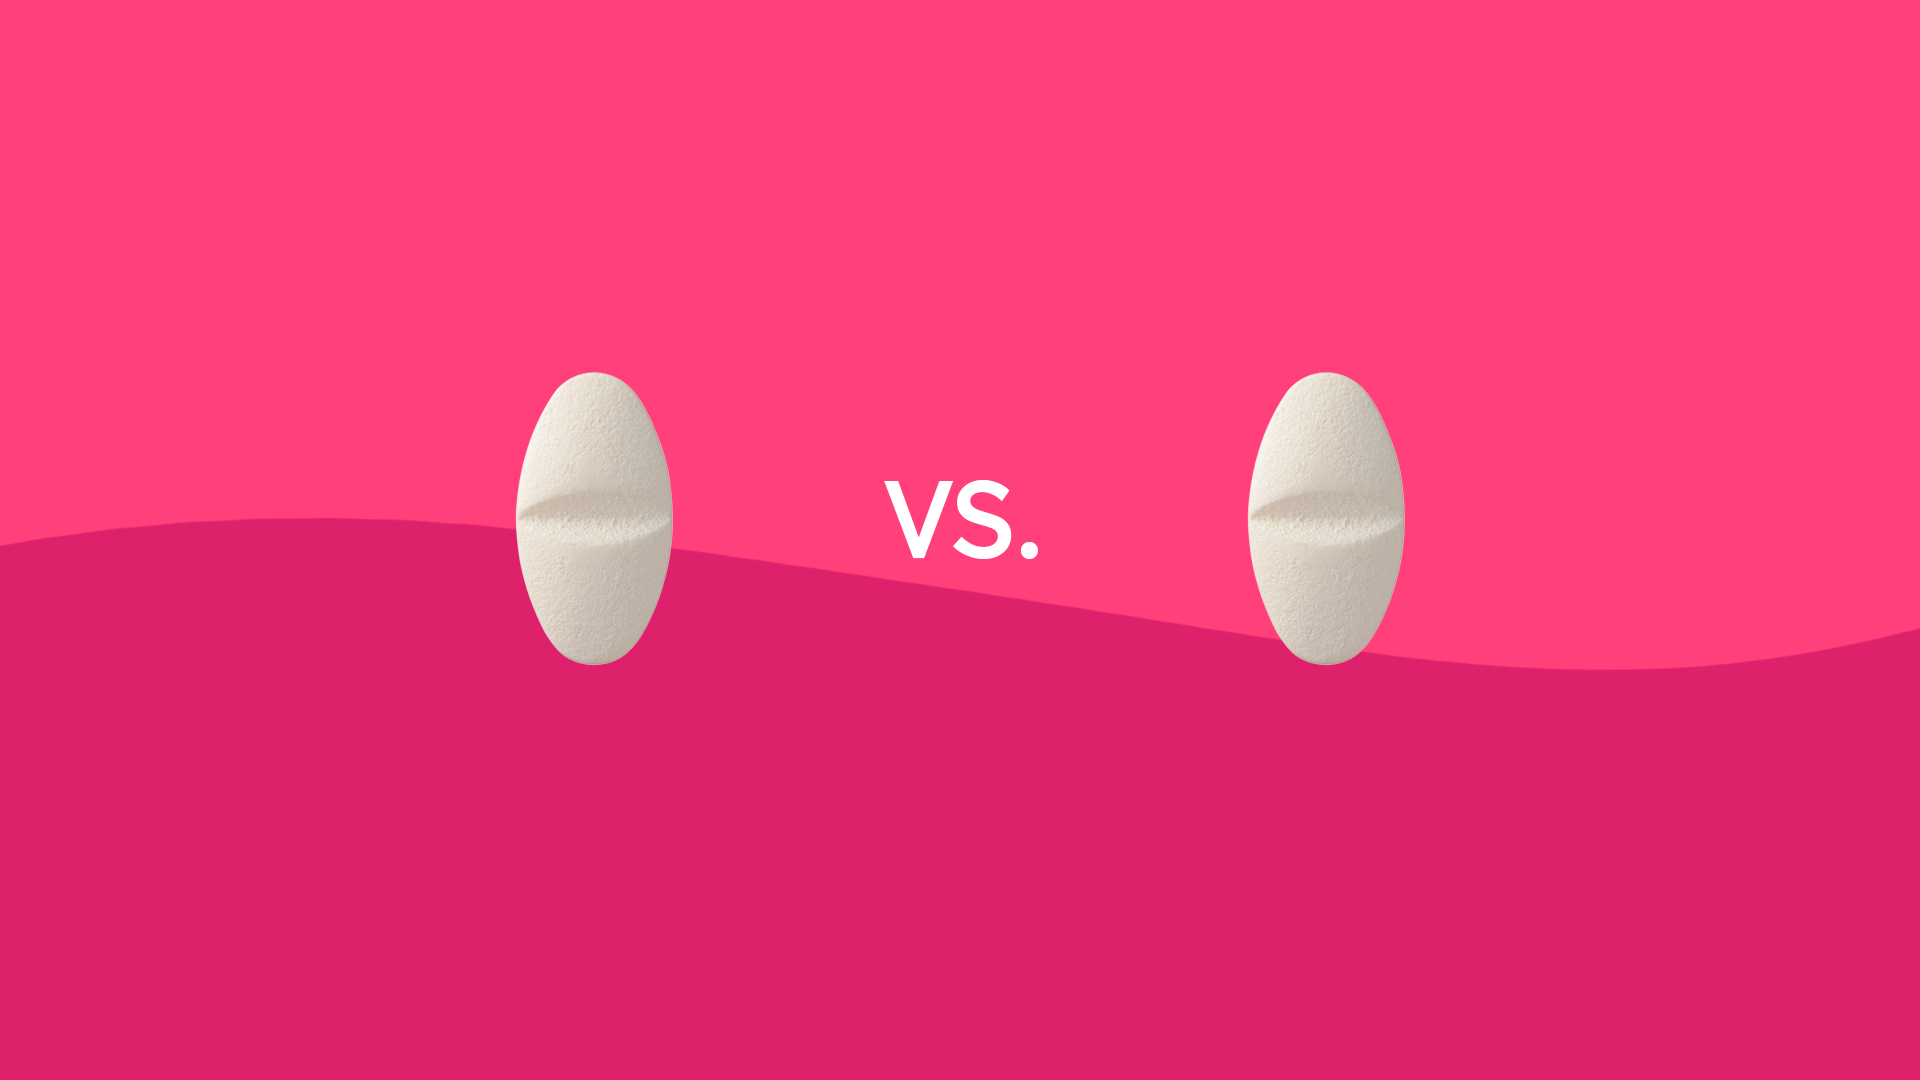 Diclofenac Vs Ibuprofen Differences Similarities And Which Is Better